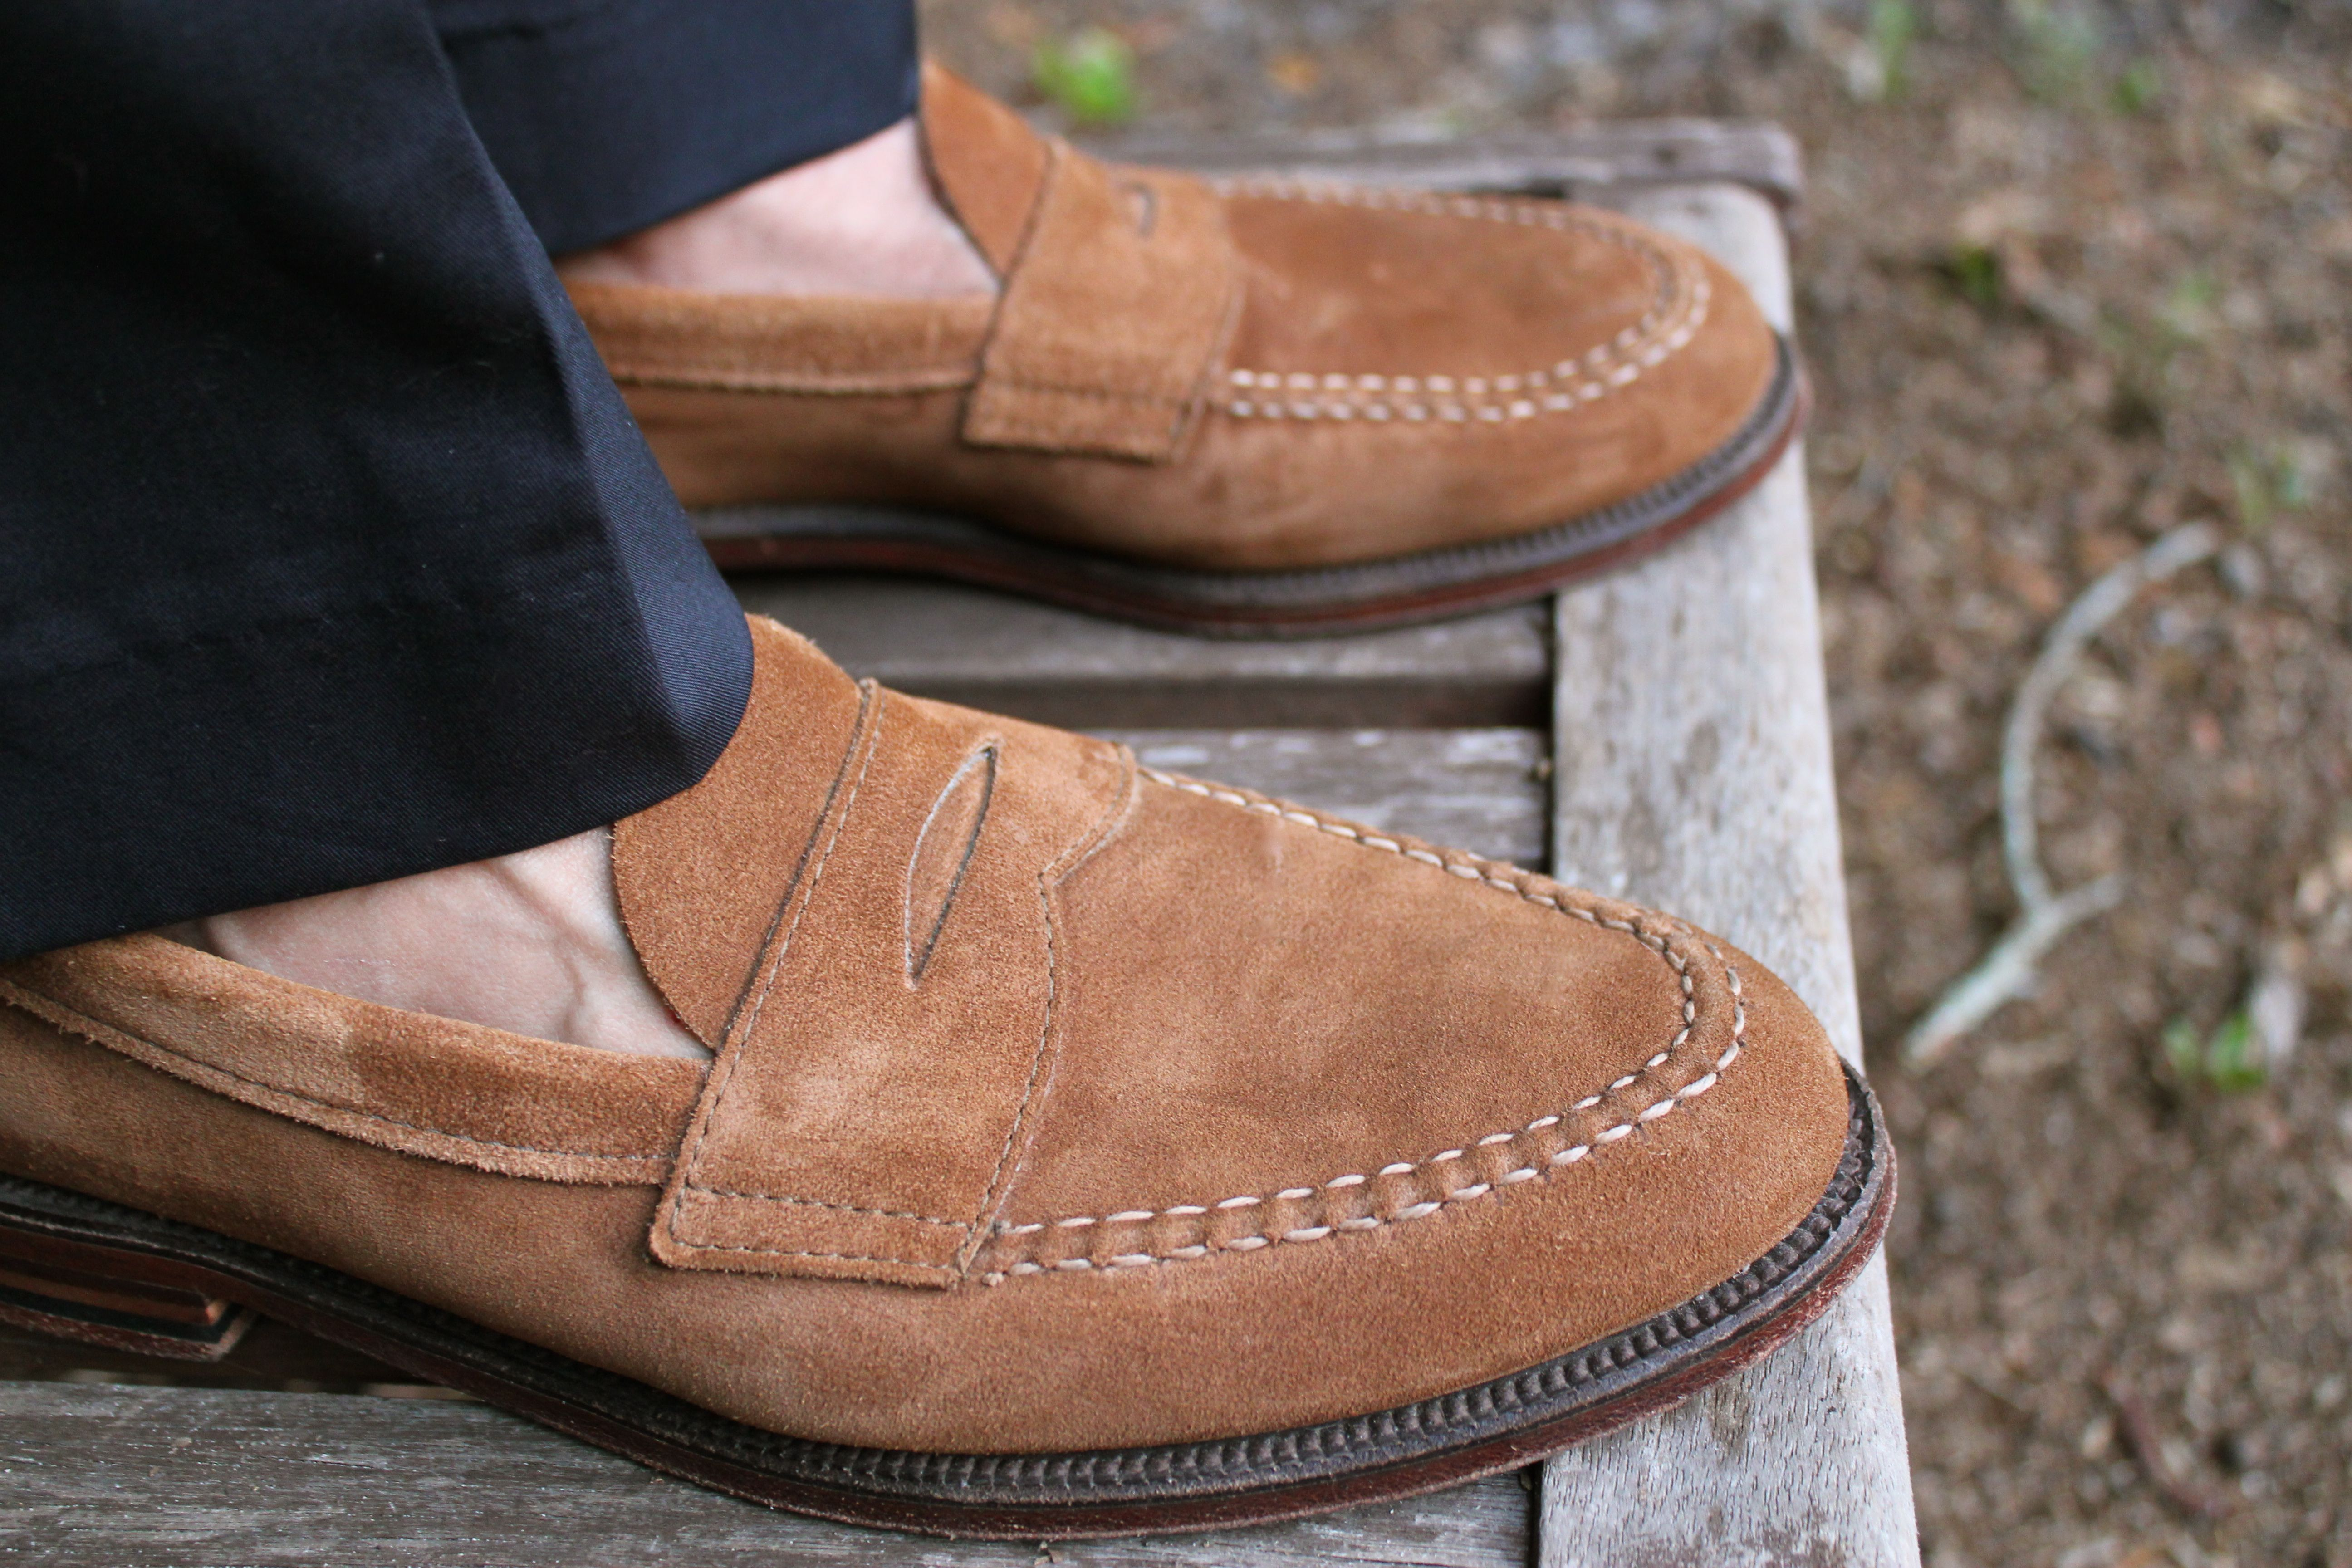 One of our favorite summer shoes, the Alden handsewn ...